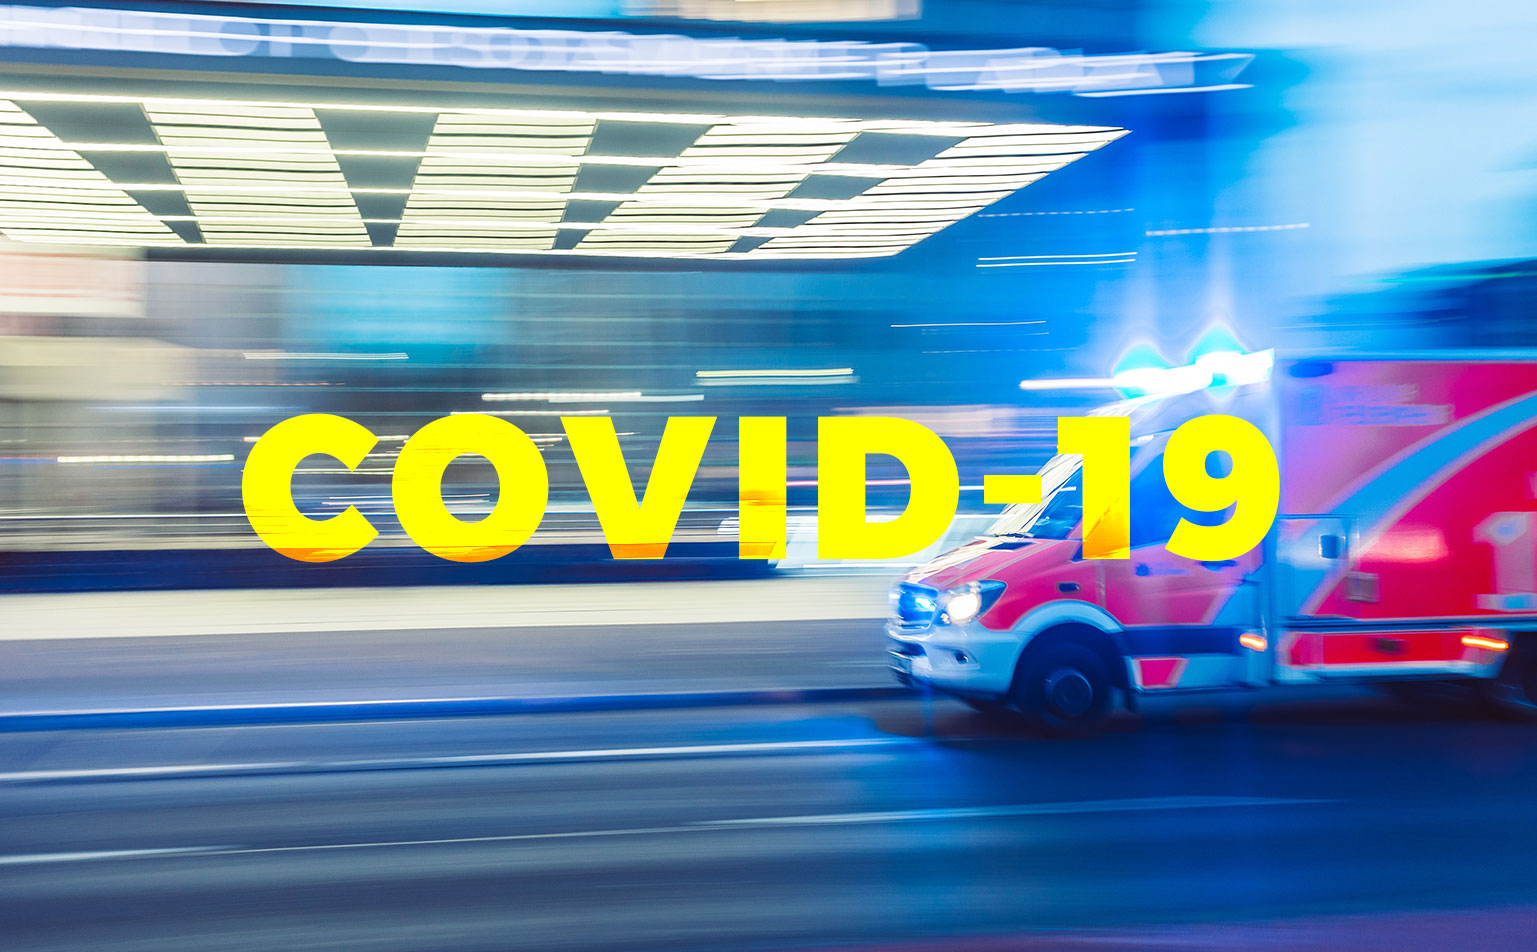 Boost your immunity during COVID-19